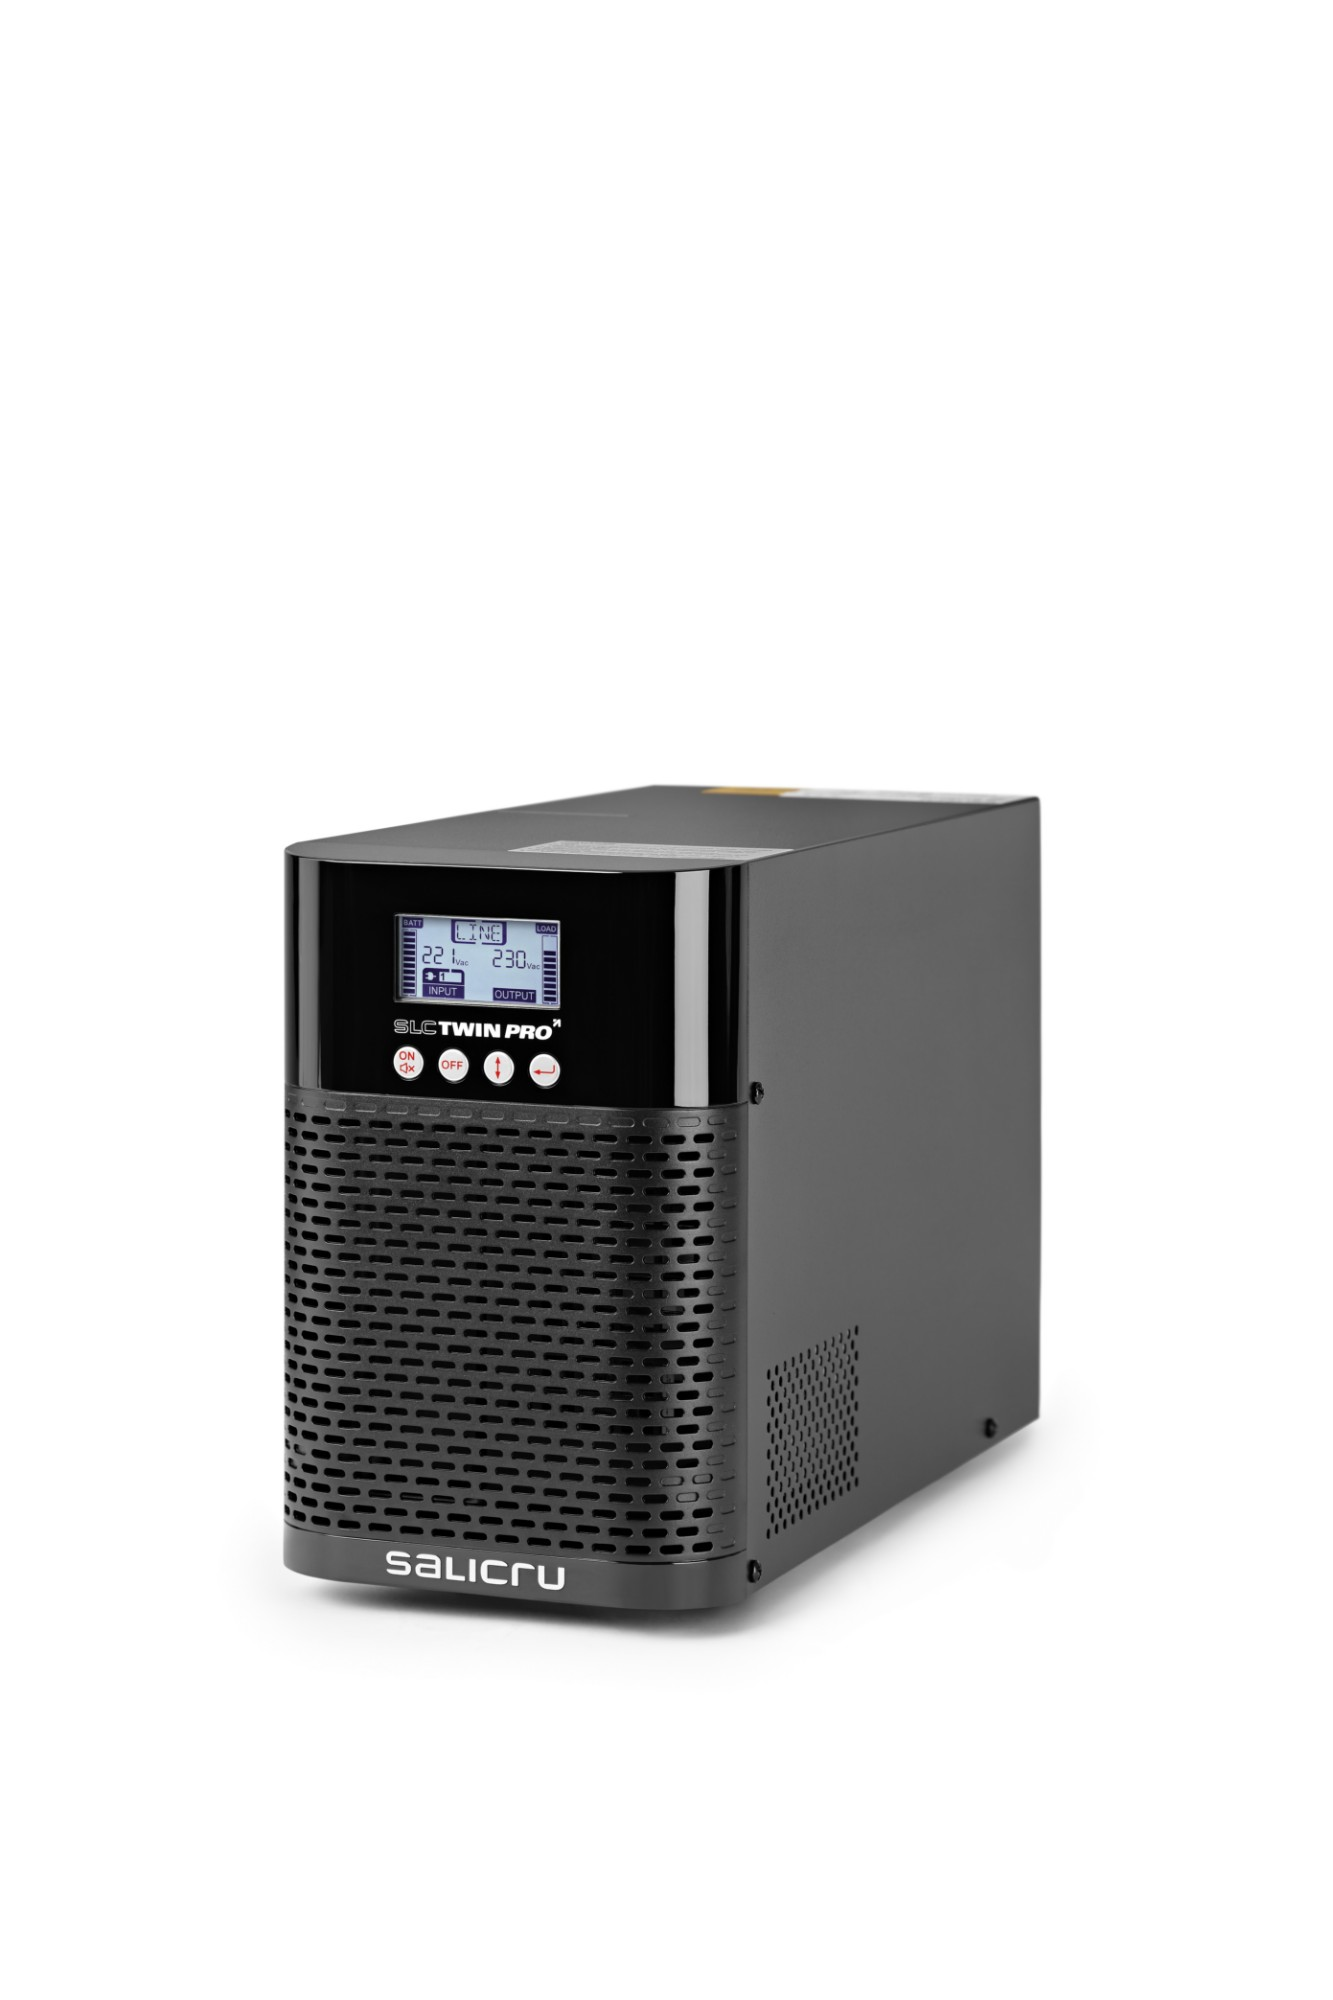 Salicru SLC 700 TWIN PRO2 SAI On-line doble conversión de 700 VA a 3000 VA